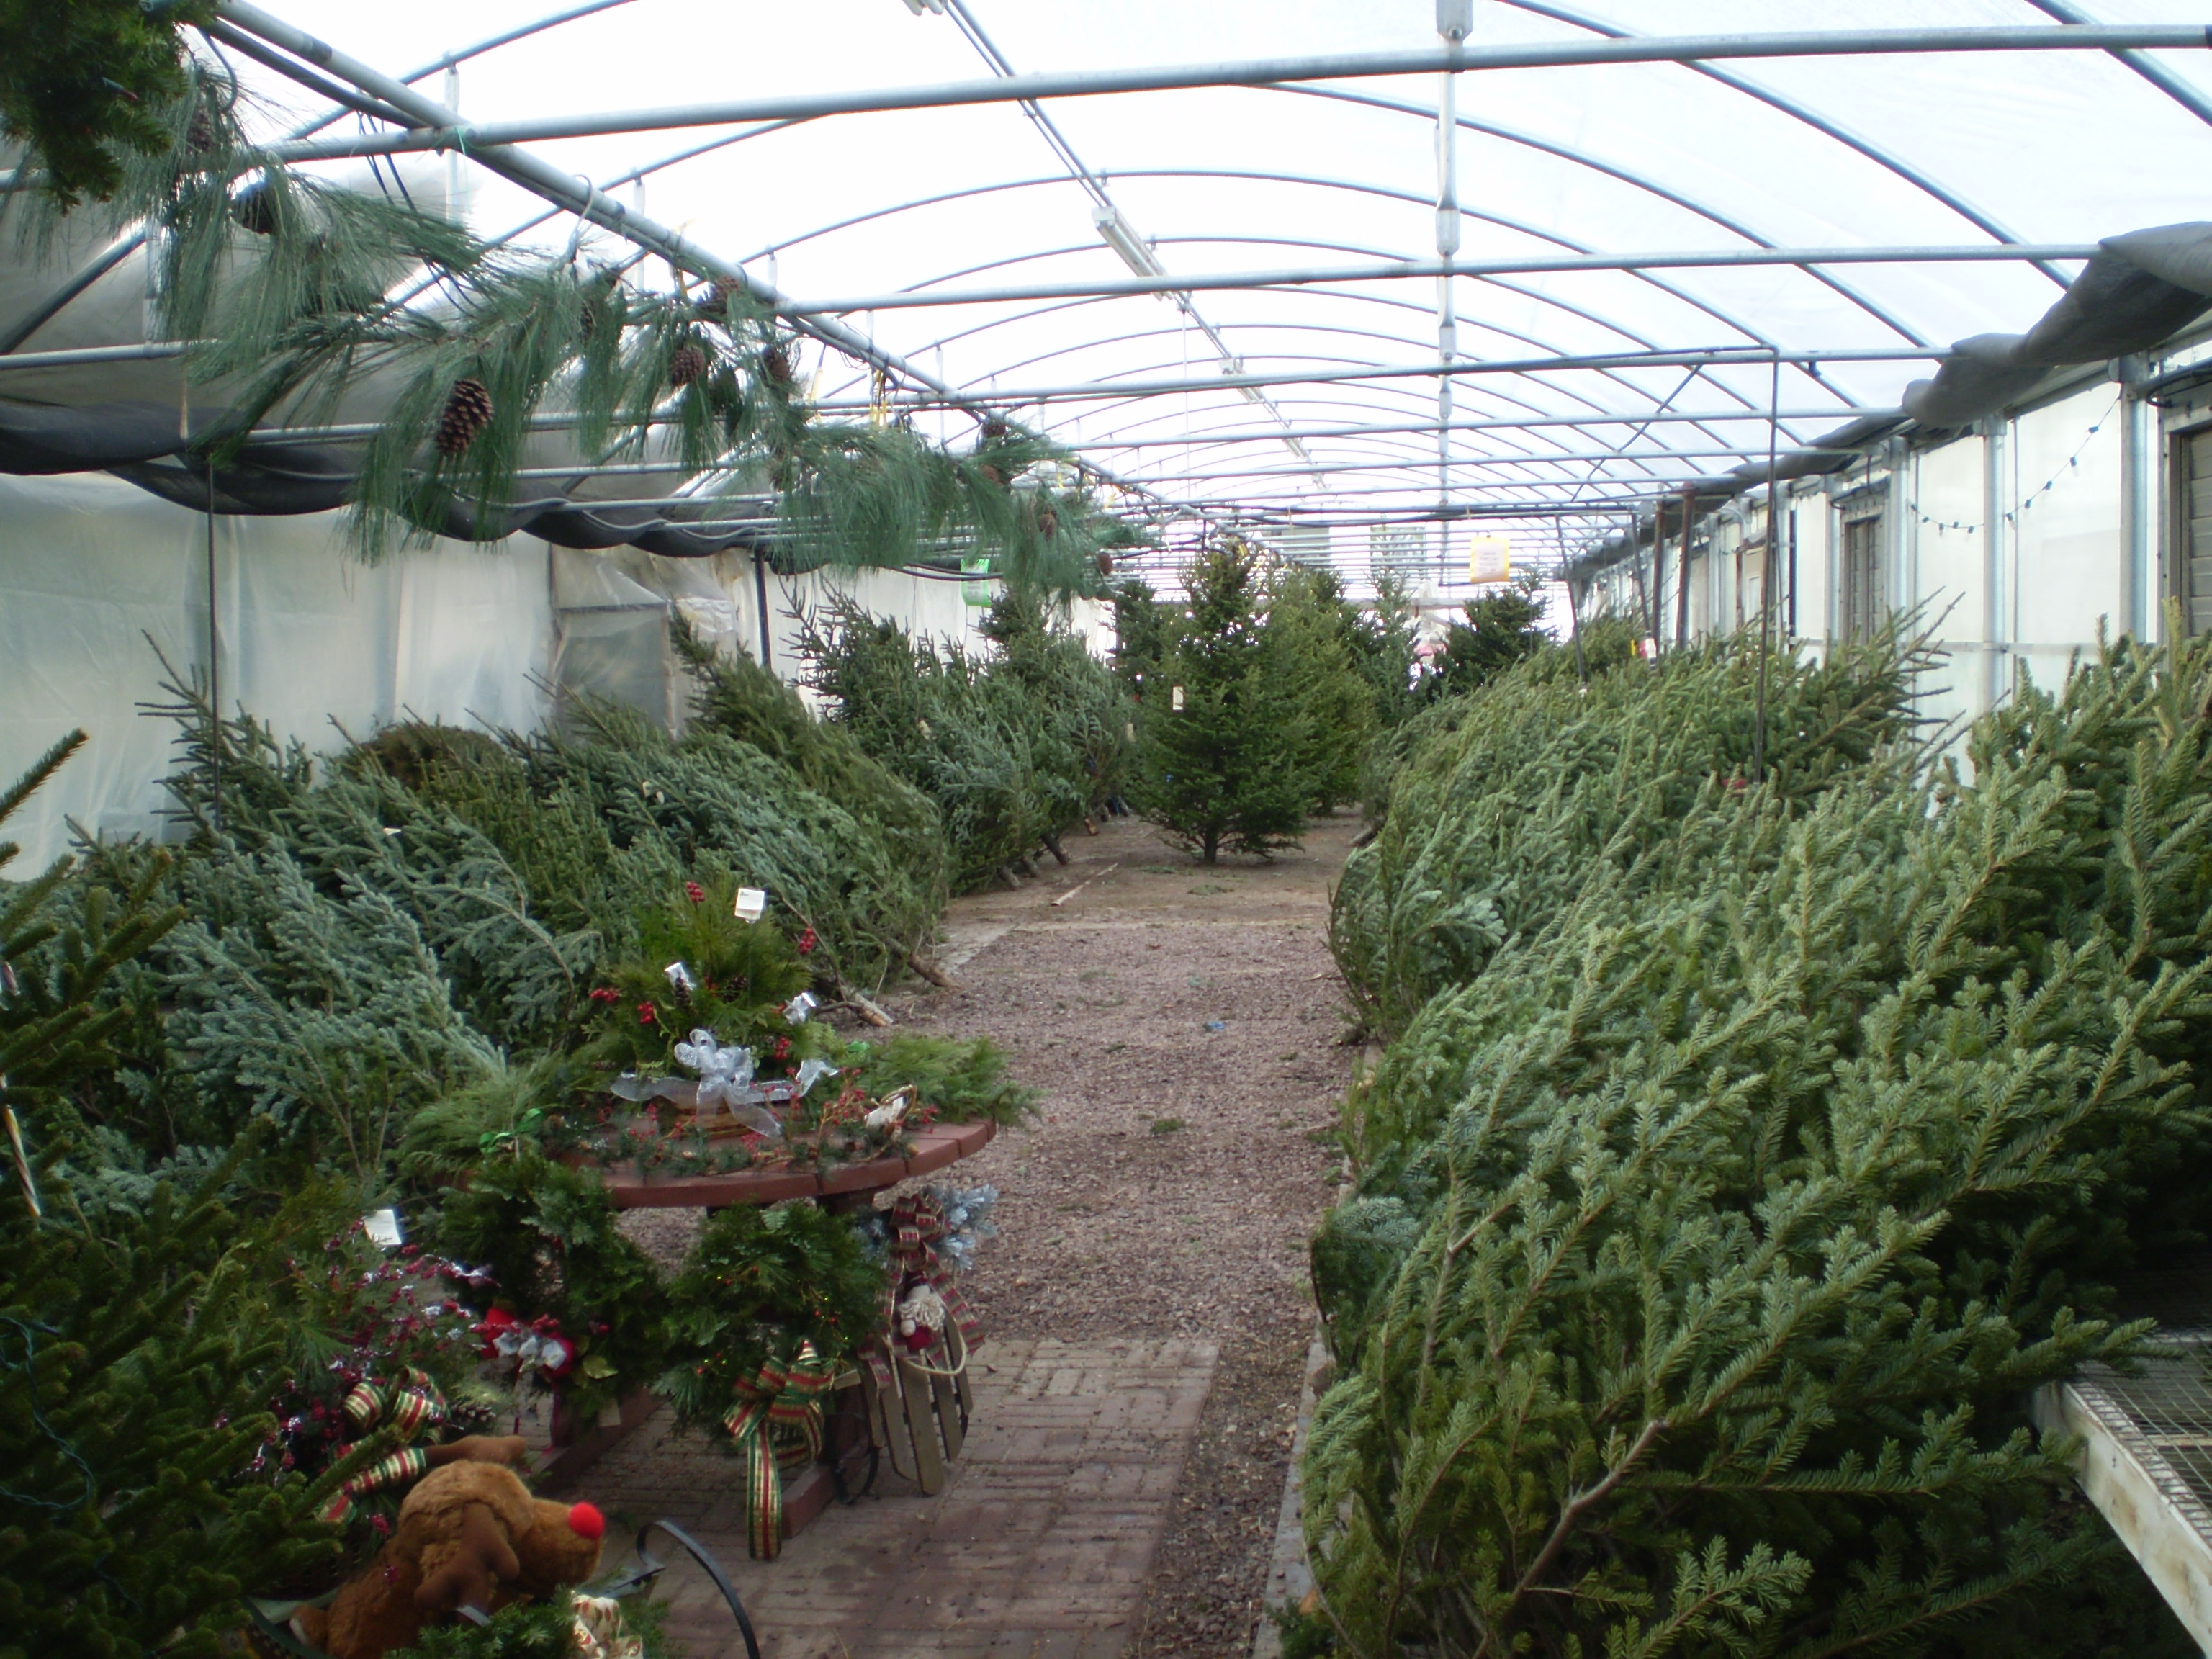 Fresh cut christmas trees from flowers by sleeman, serving houghton, hancock, chassell, keweenaw, and the surrounding communities.